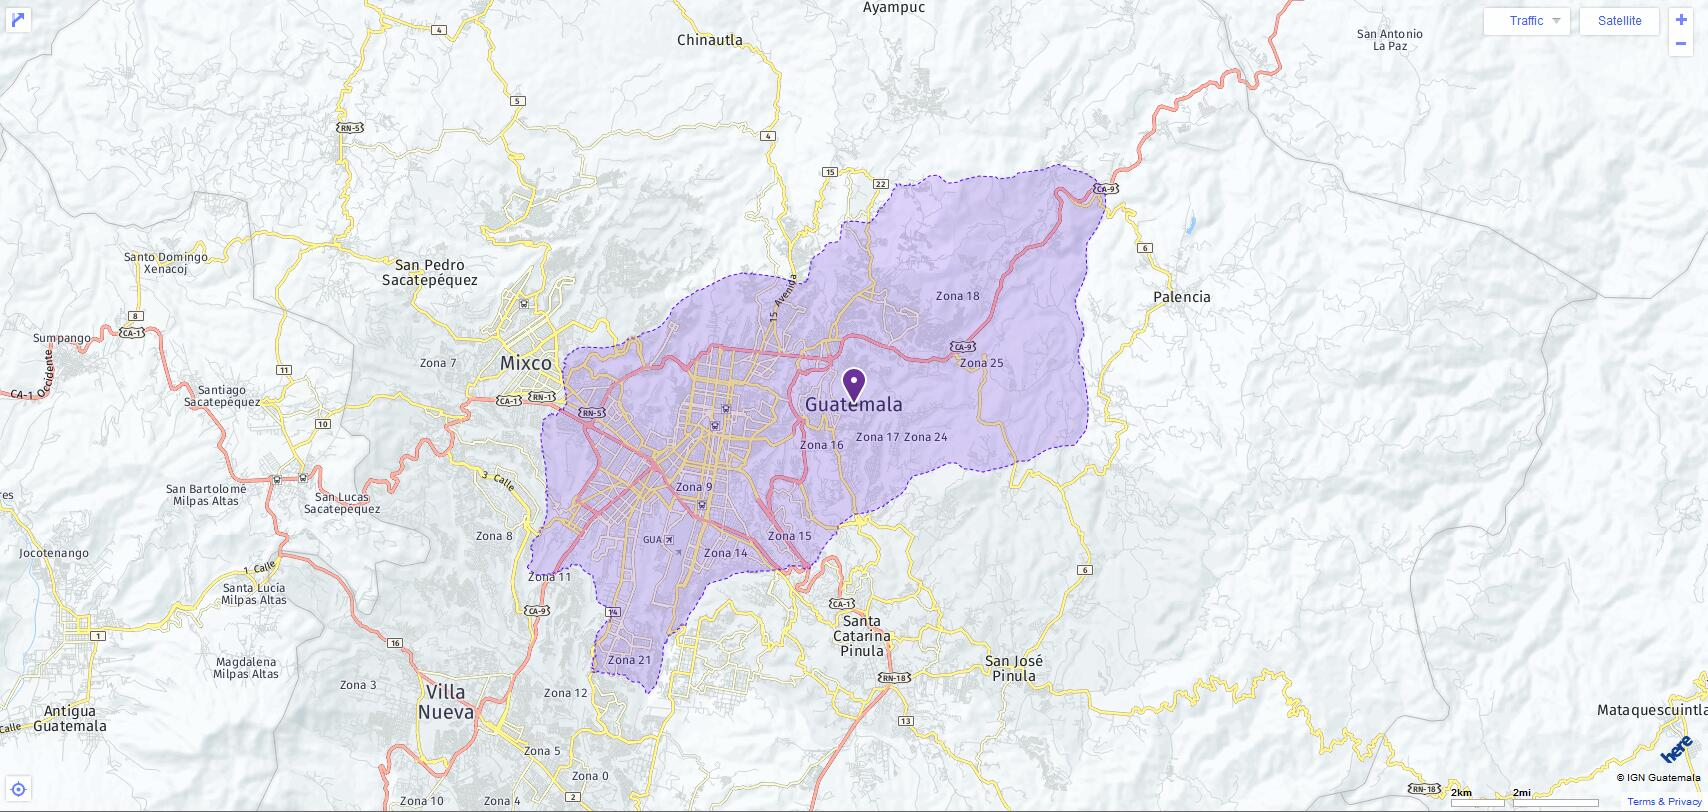 ACT Test Centers and Dates in Guatemala